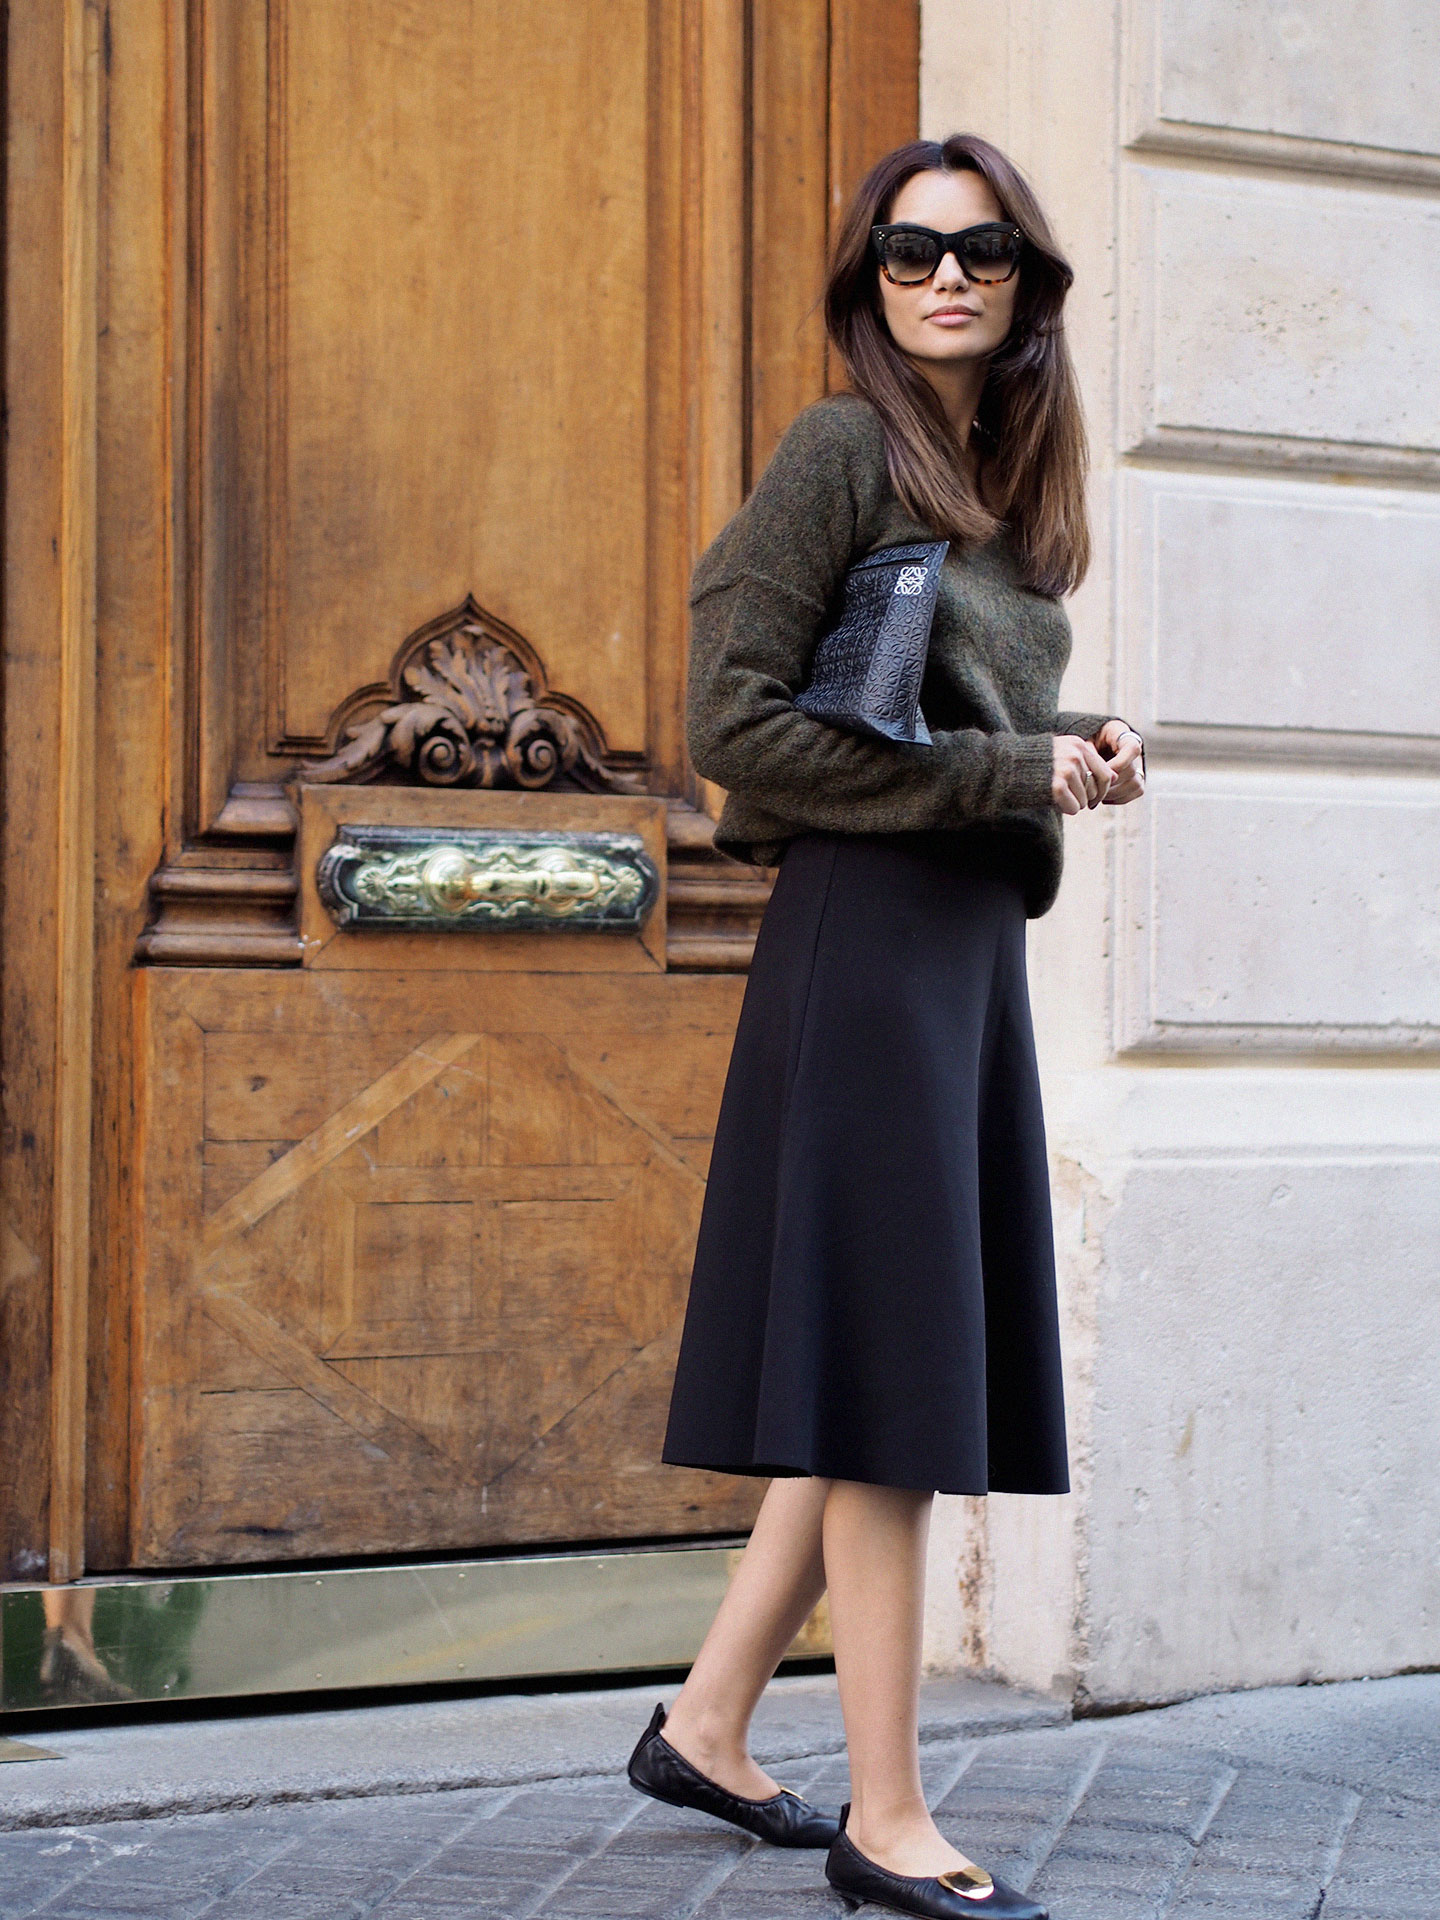 Funda Christophersen's cute fall outfit consists of a cropped knit sweater worn stylishly over a knee length black skirt and matched with vintage style flats. This look is smart and sophisticated, and suitable for any occasion. Sweater: Second Female, Skirt: Cos, Shoes: Celine, Bag: Loewe.